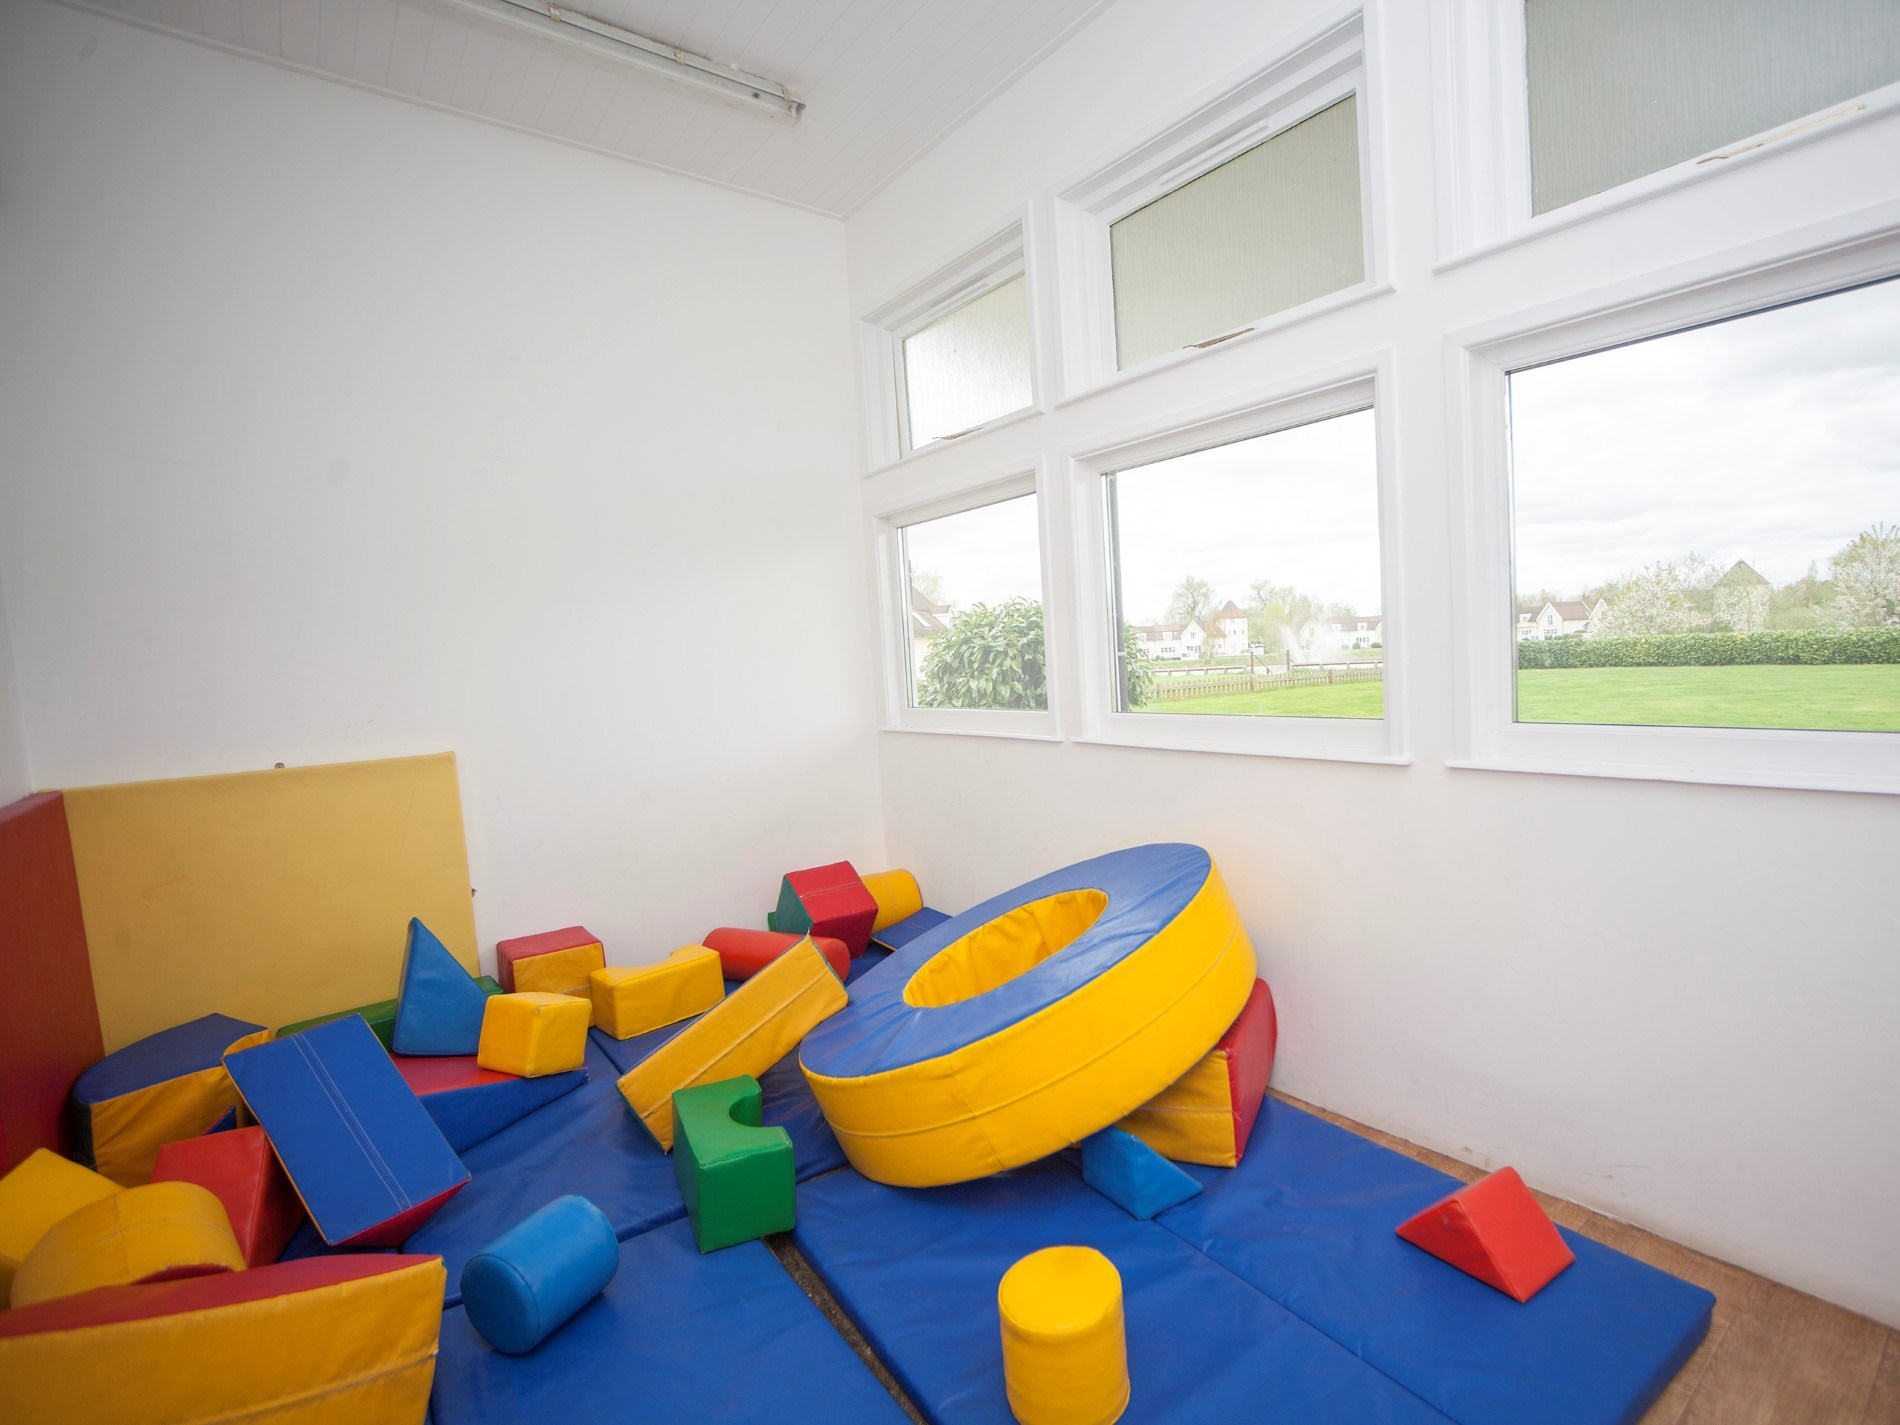 Childrens play areas